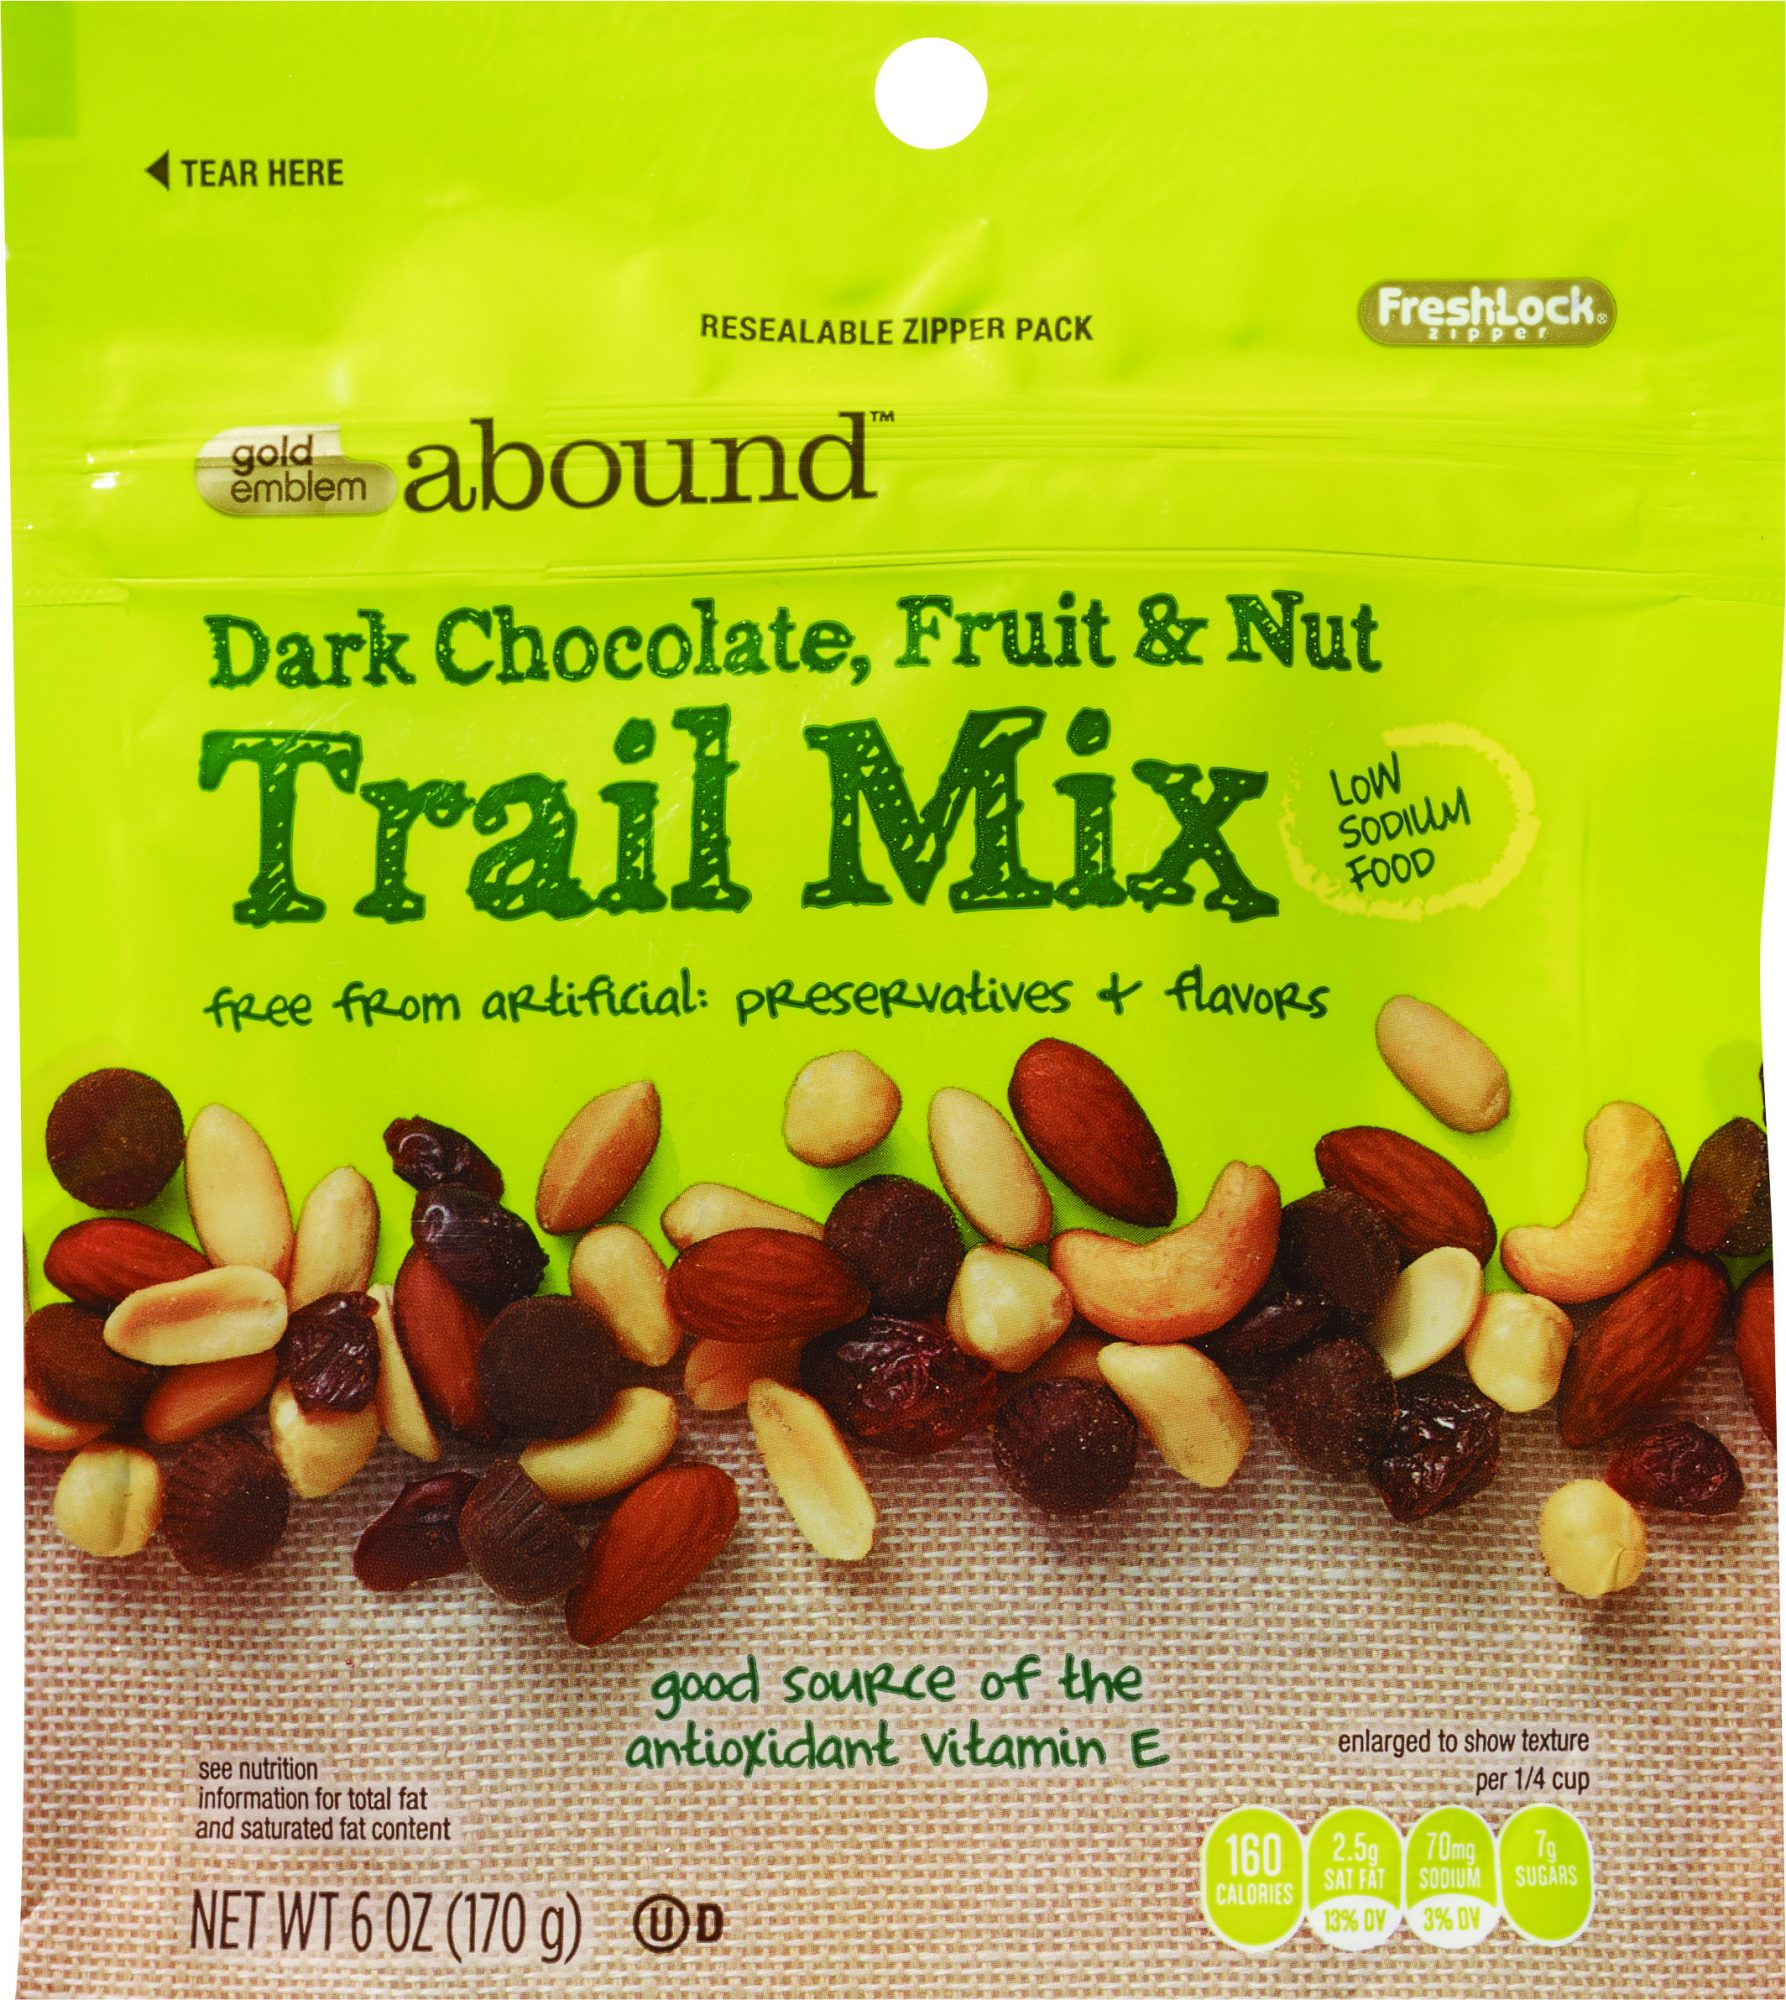 gea-dark-chocolate-fruit-nut-trail-mix.jpeg